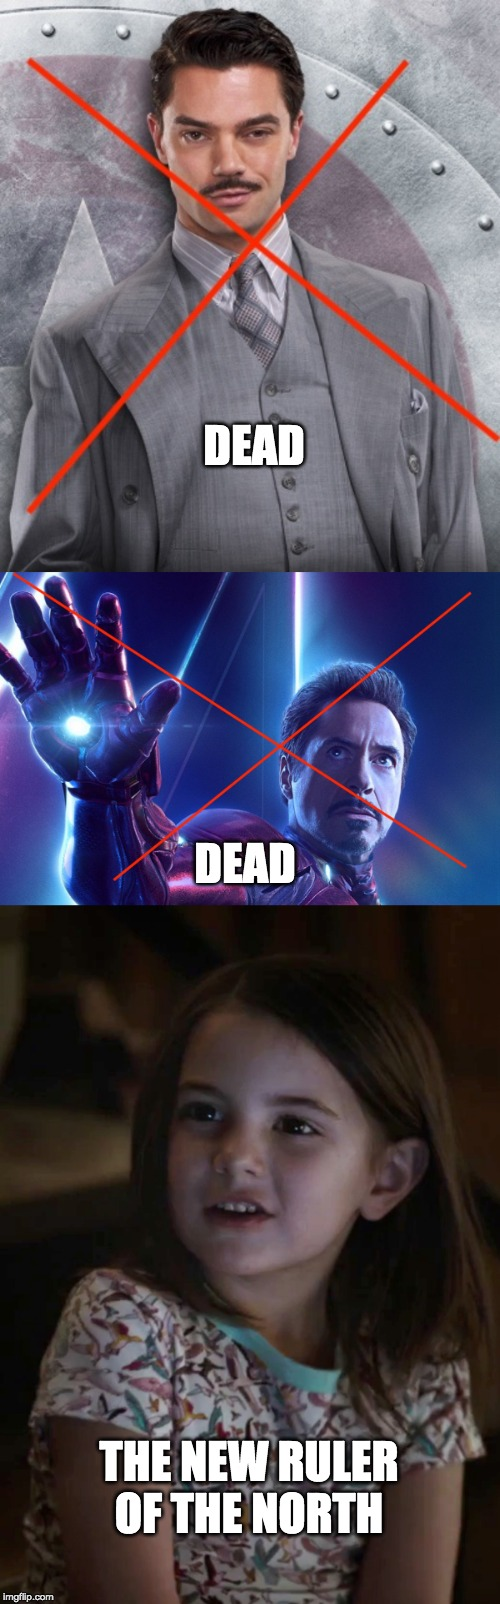 The Tragedy of the Starks | DEAD DEAD THE NEW RULER OF THE NORTH | image tagged in iron man,tony stark,marvel,game of thrones | made w/ Imgflip meme maker